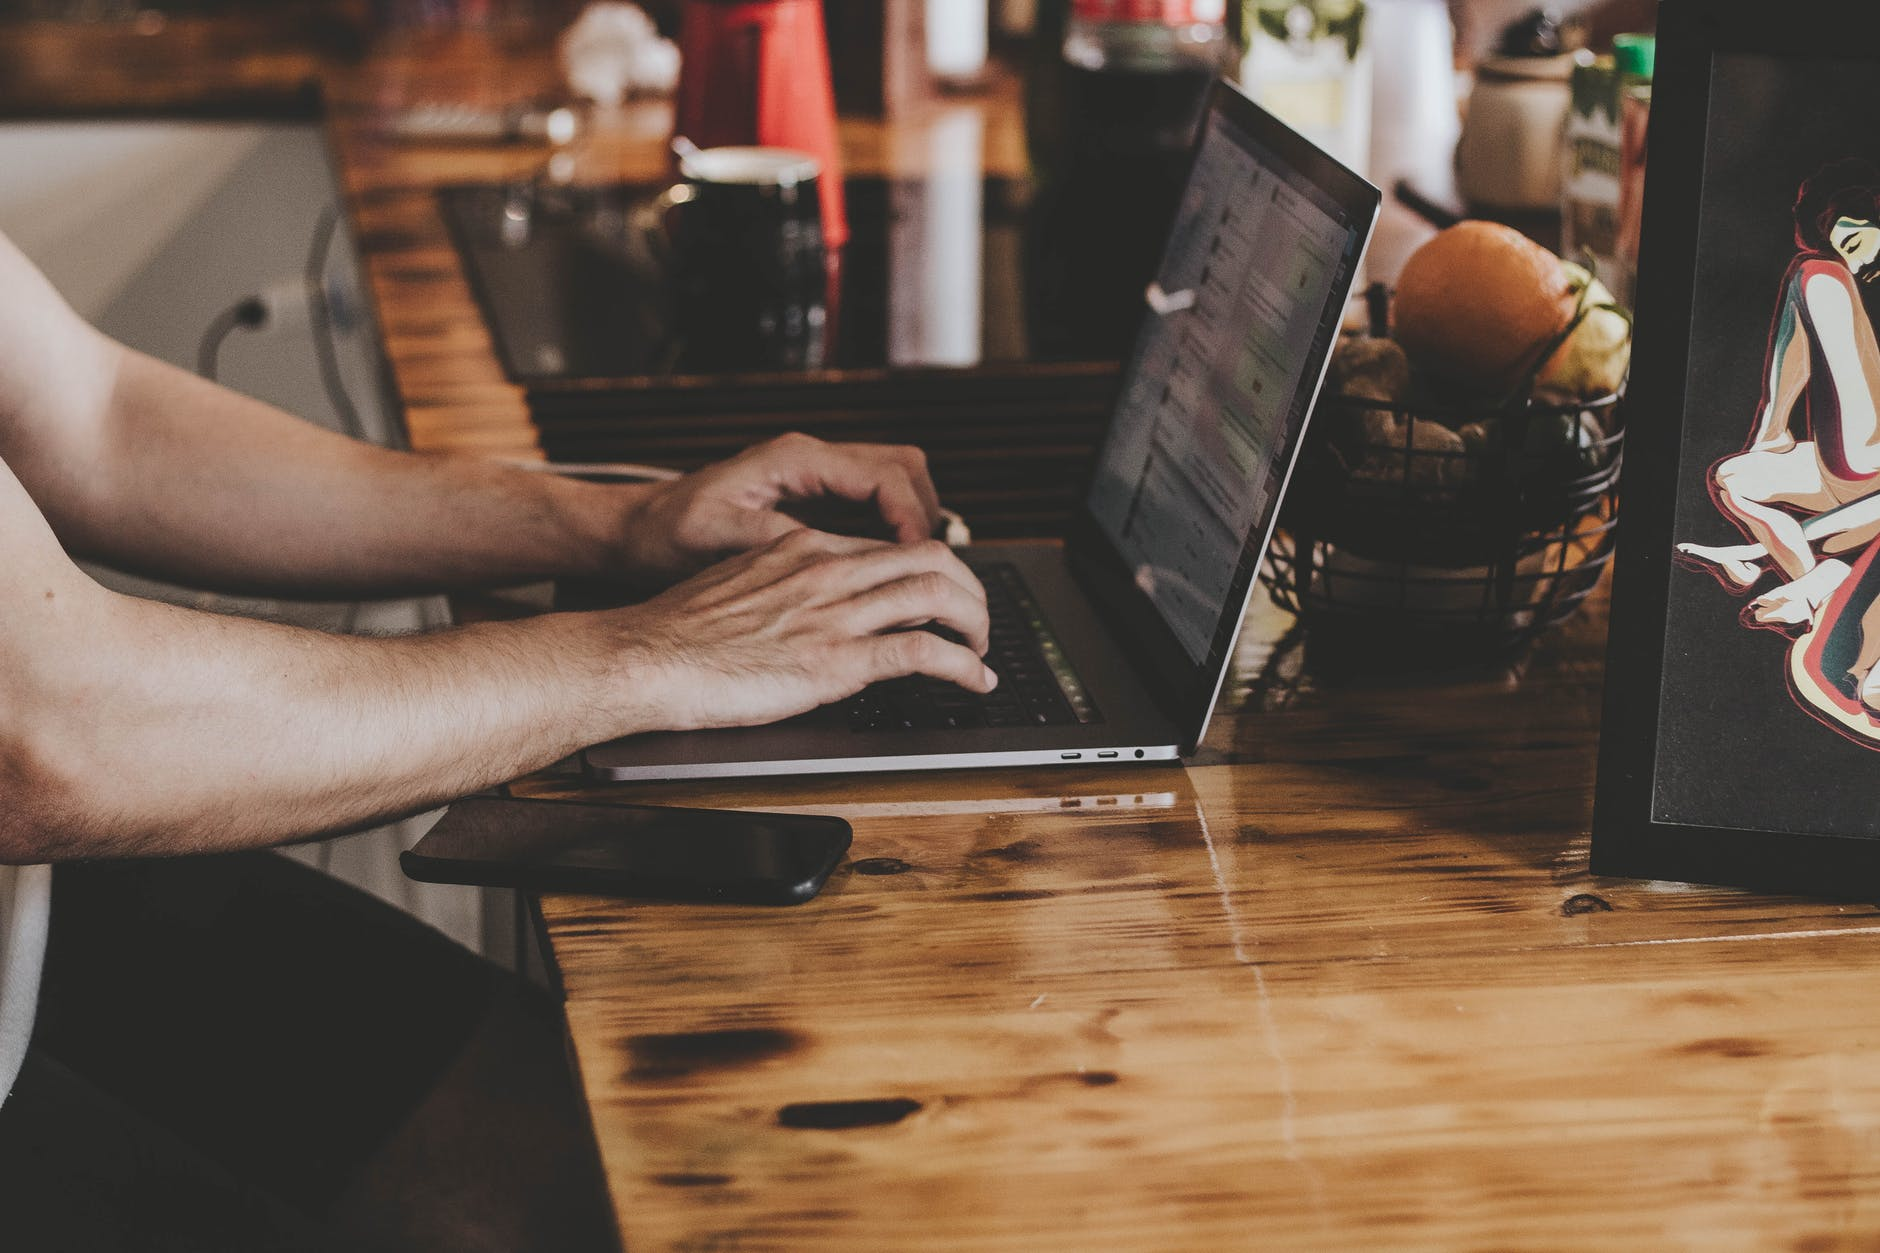 person in front of laptop on brown wooden table